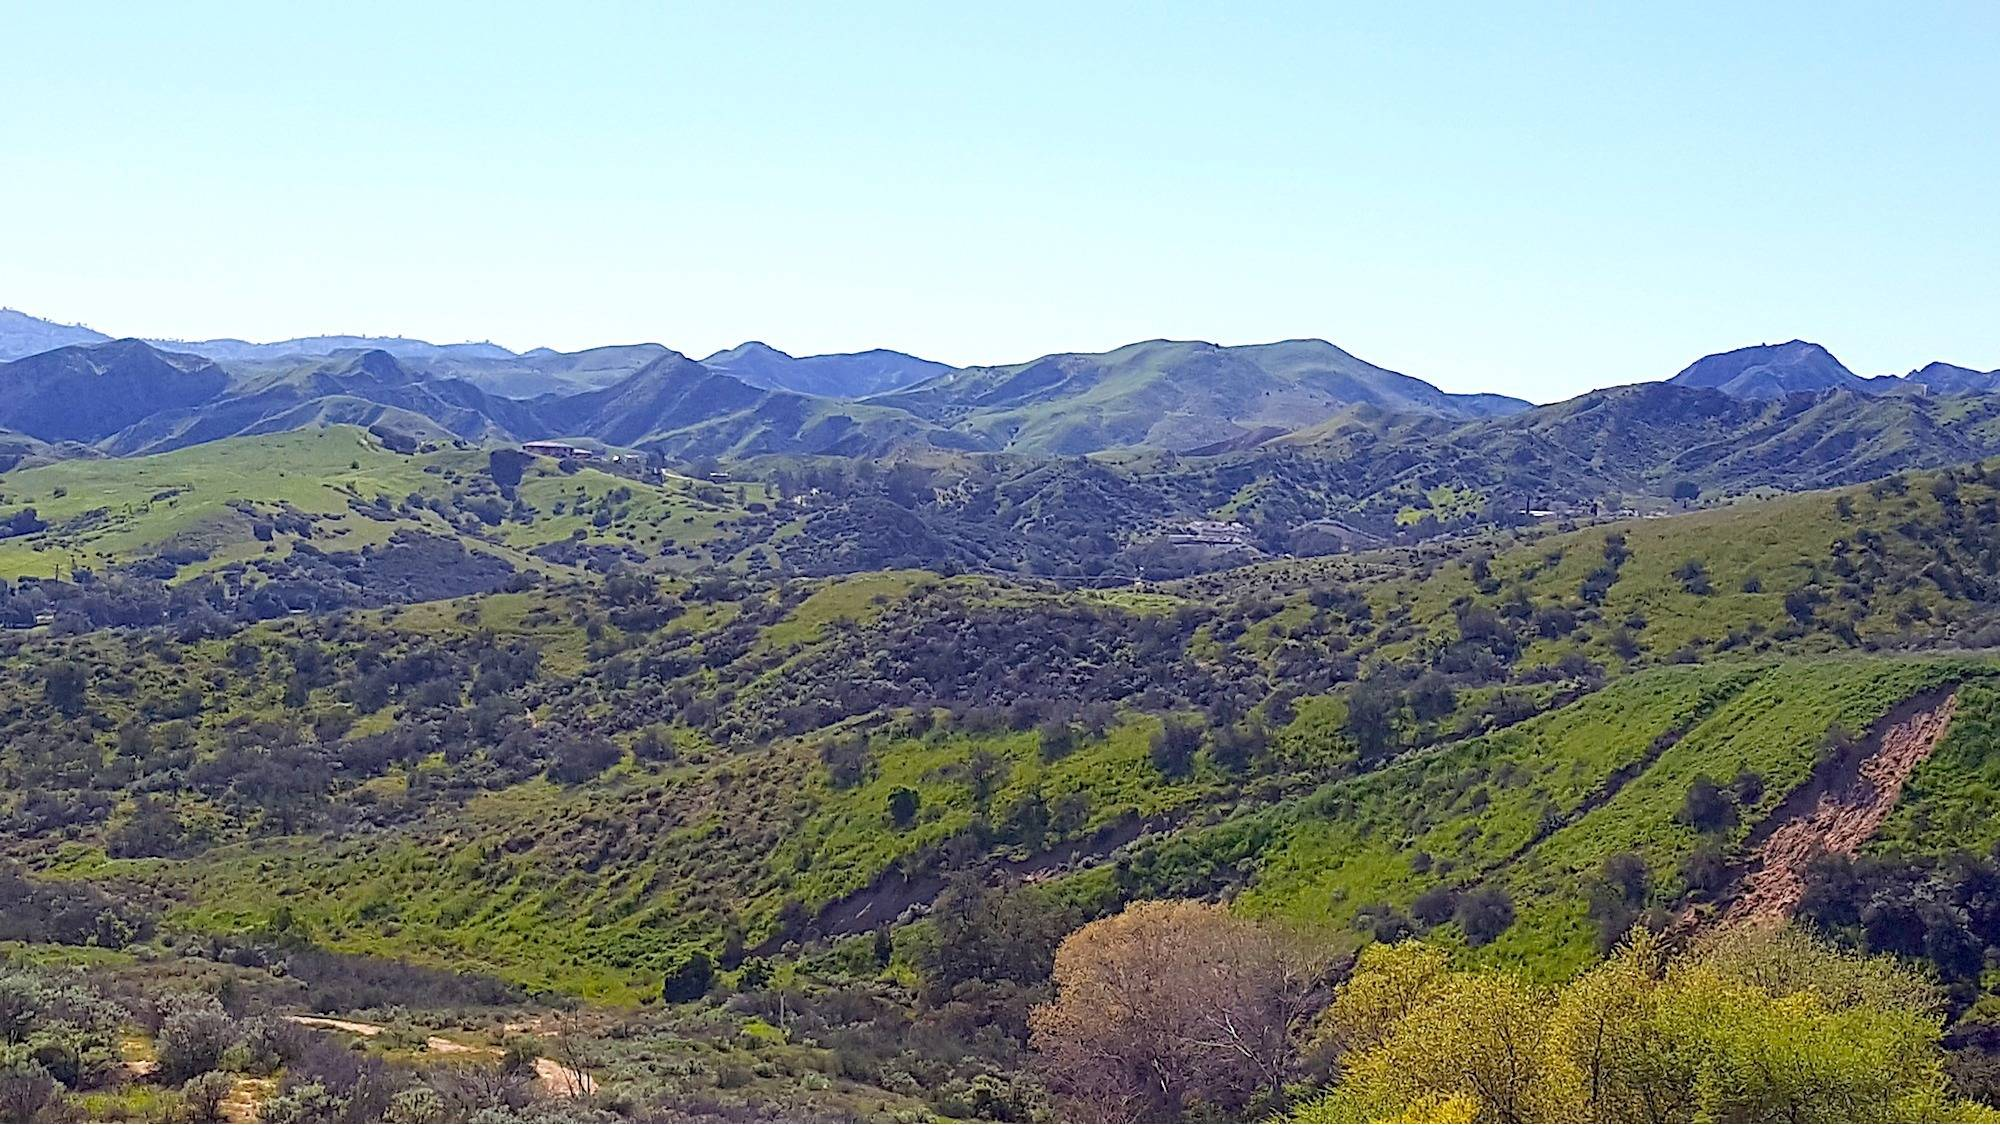 Castaic CA hills in the spring